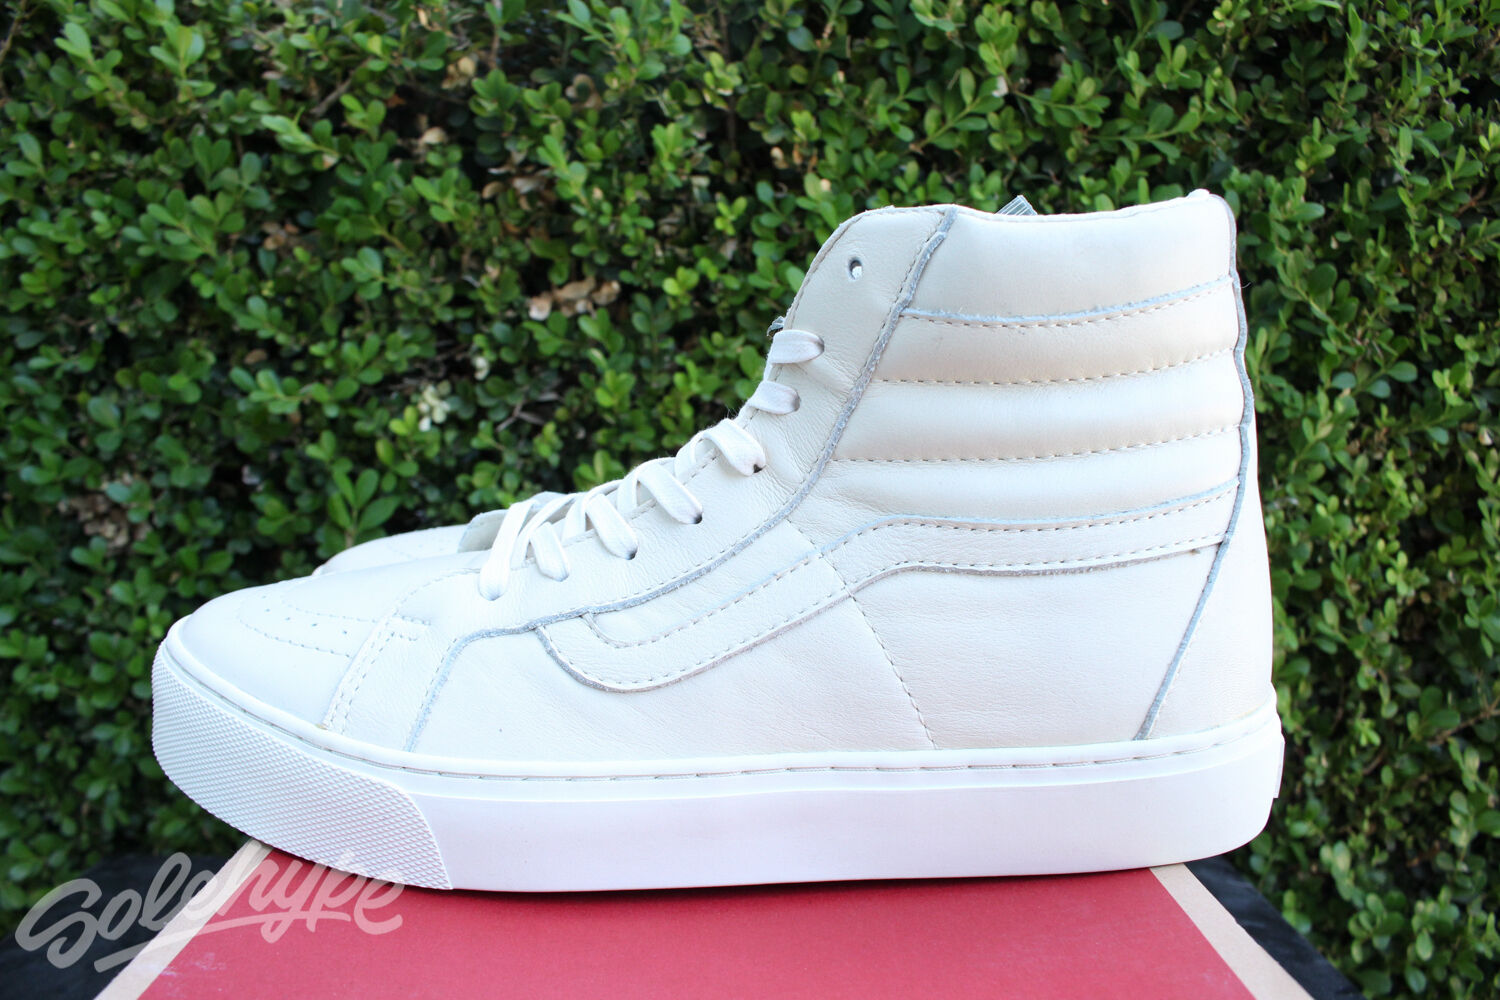 VANS CALIFORNIA SK8 HI LEATHER CUP CA SZ 8.5 WHISPER WHITE VN 0177GS7